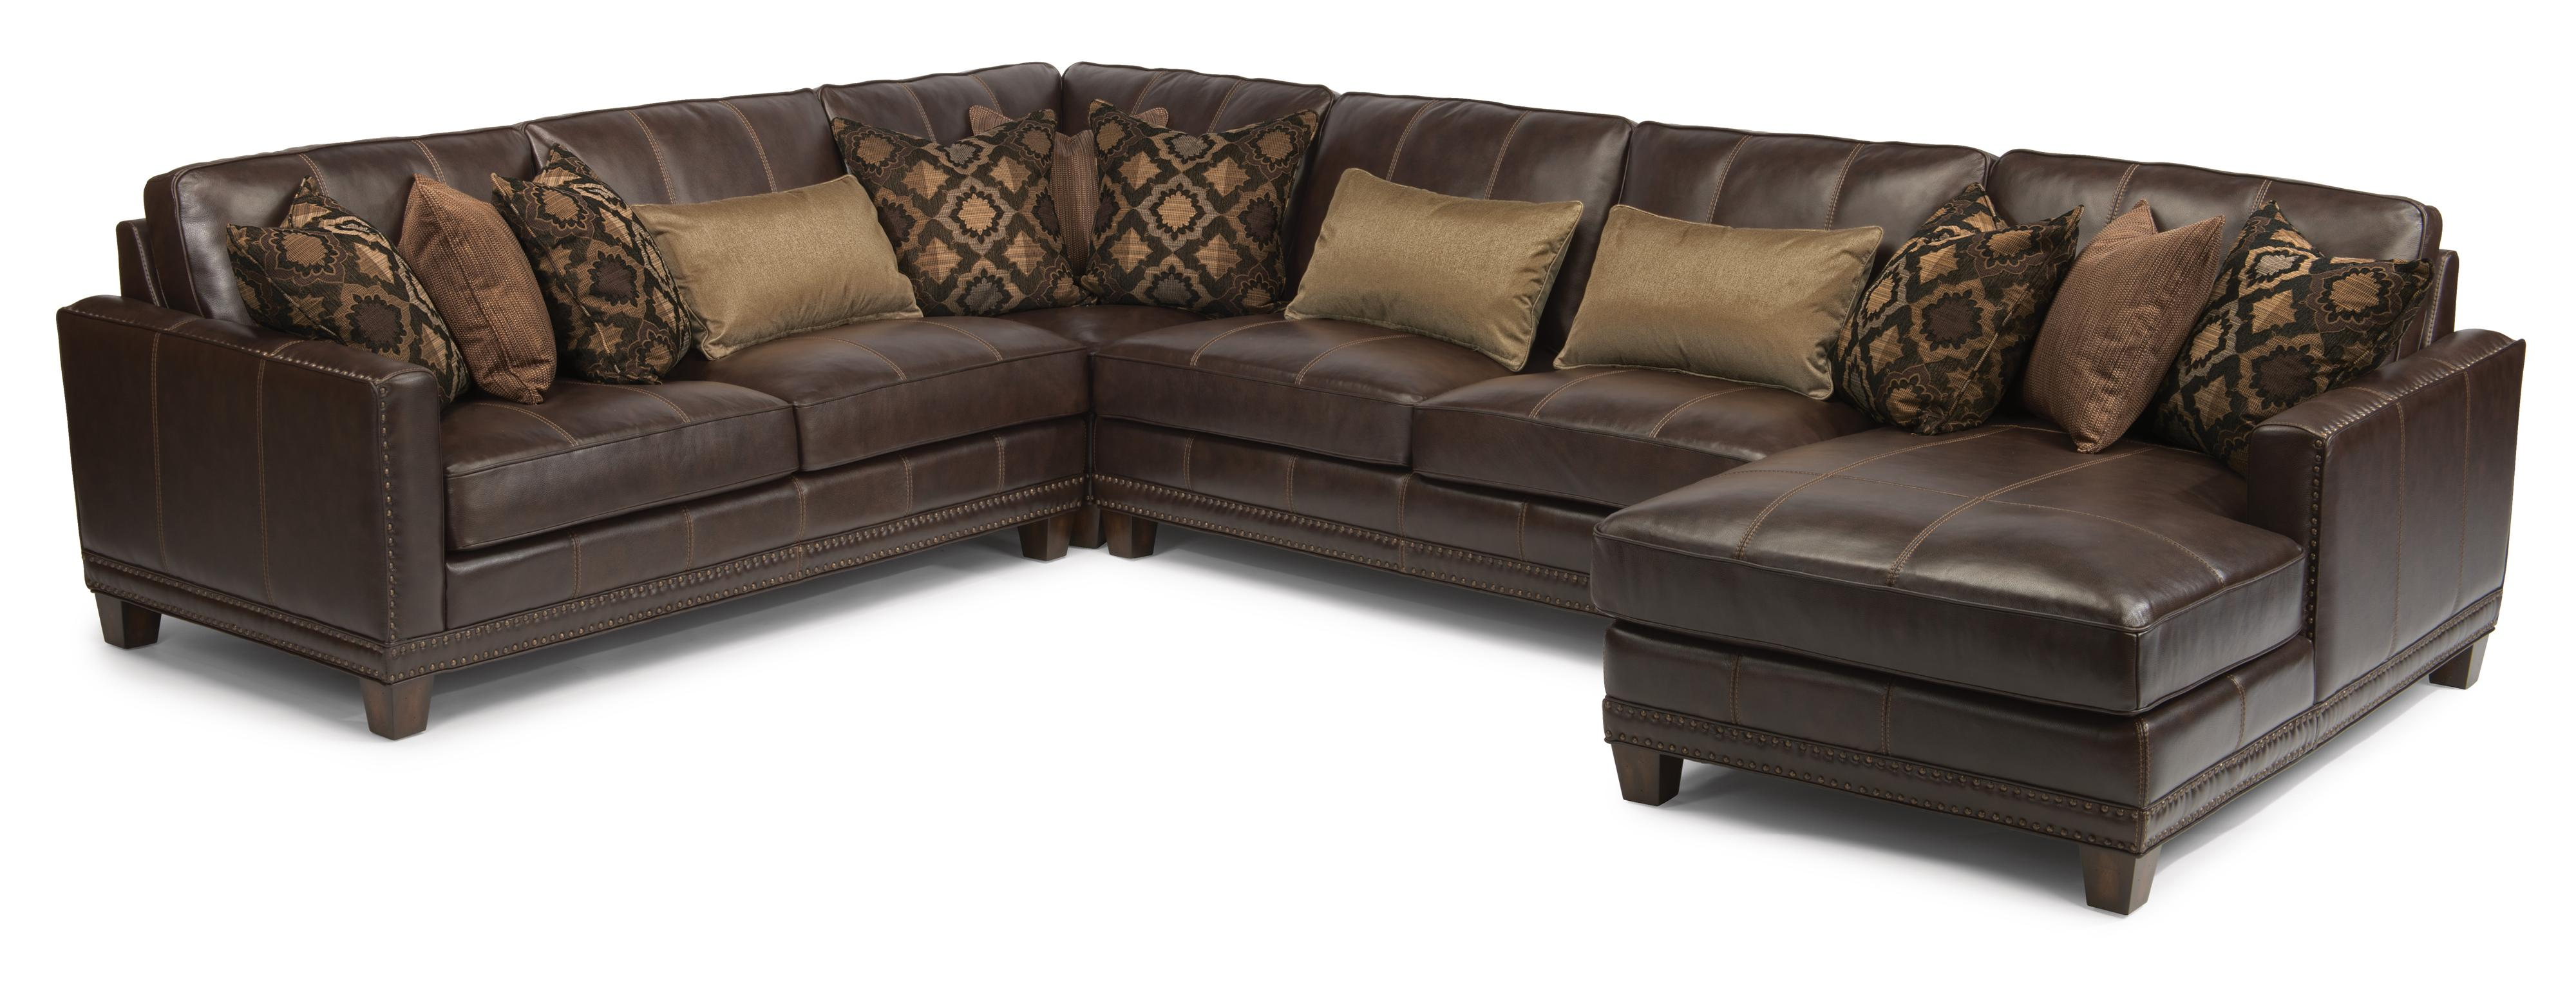 flexsteel sectional sofas sofa beds with a chaise latitudes port royal transitional four piece